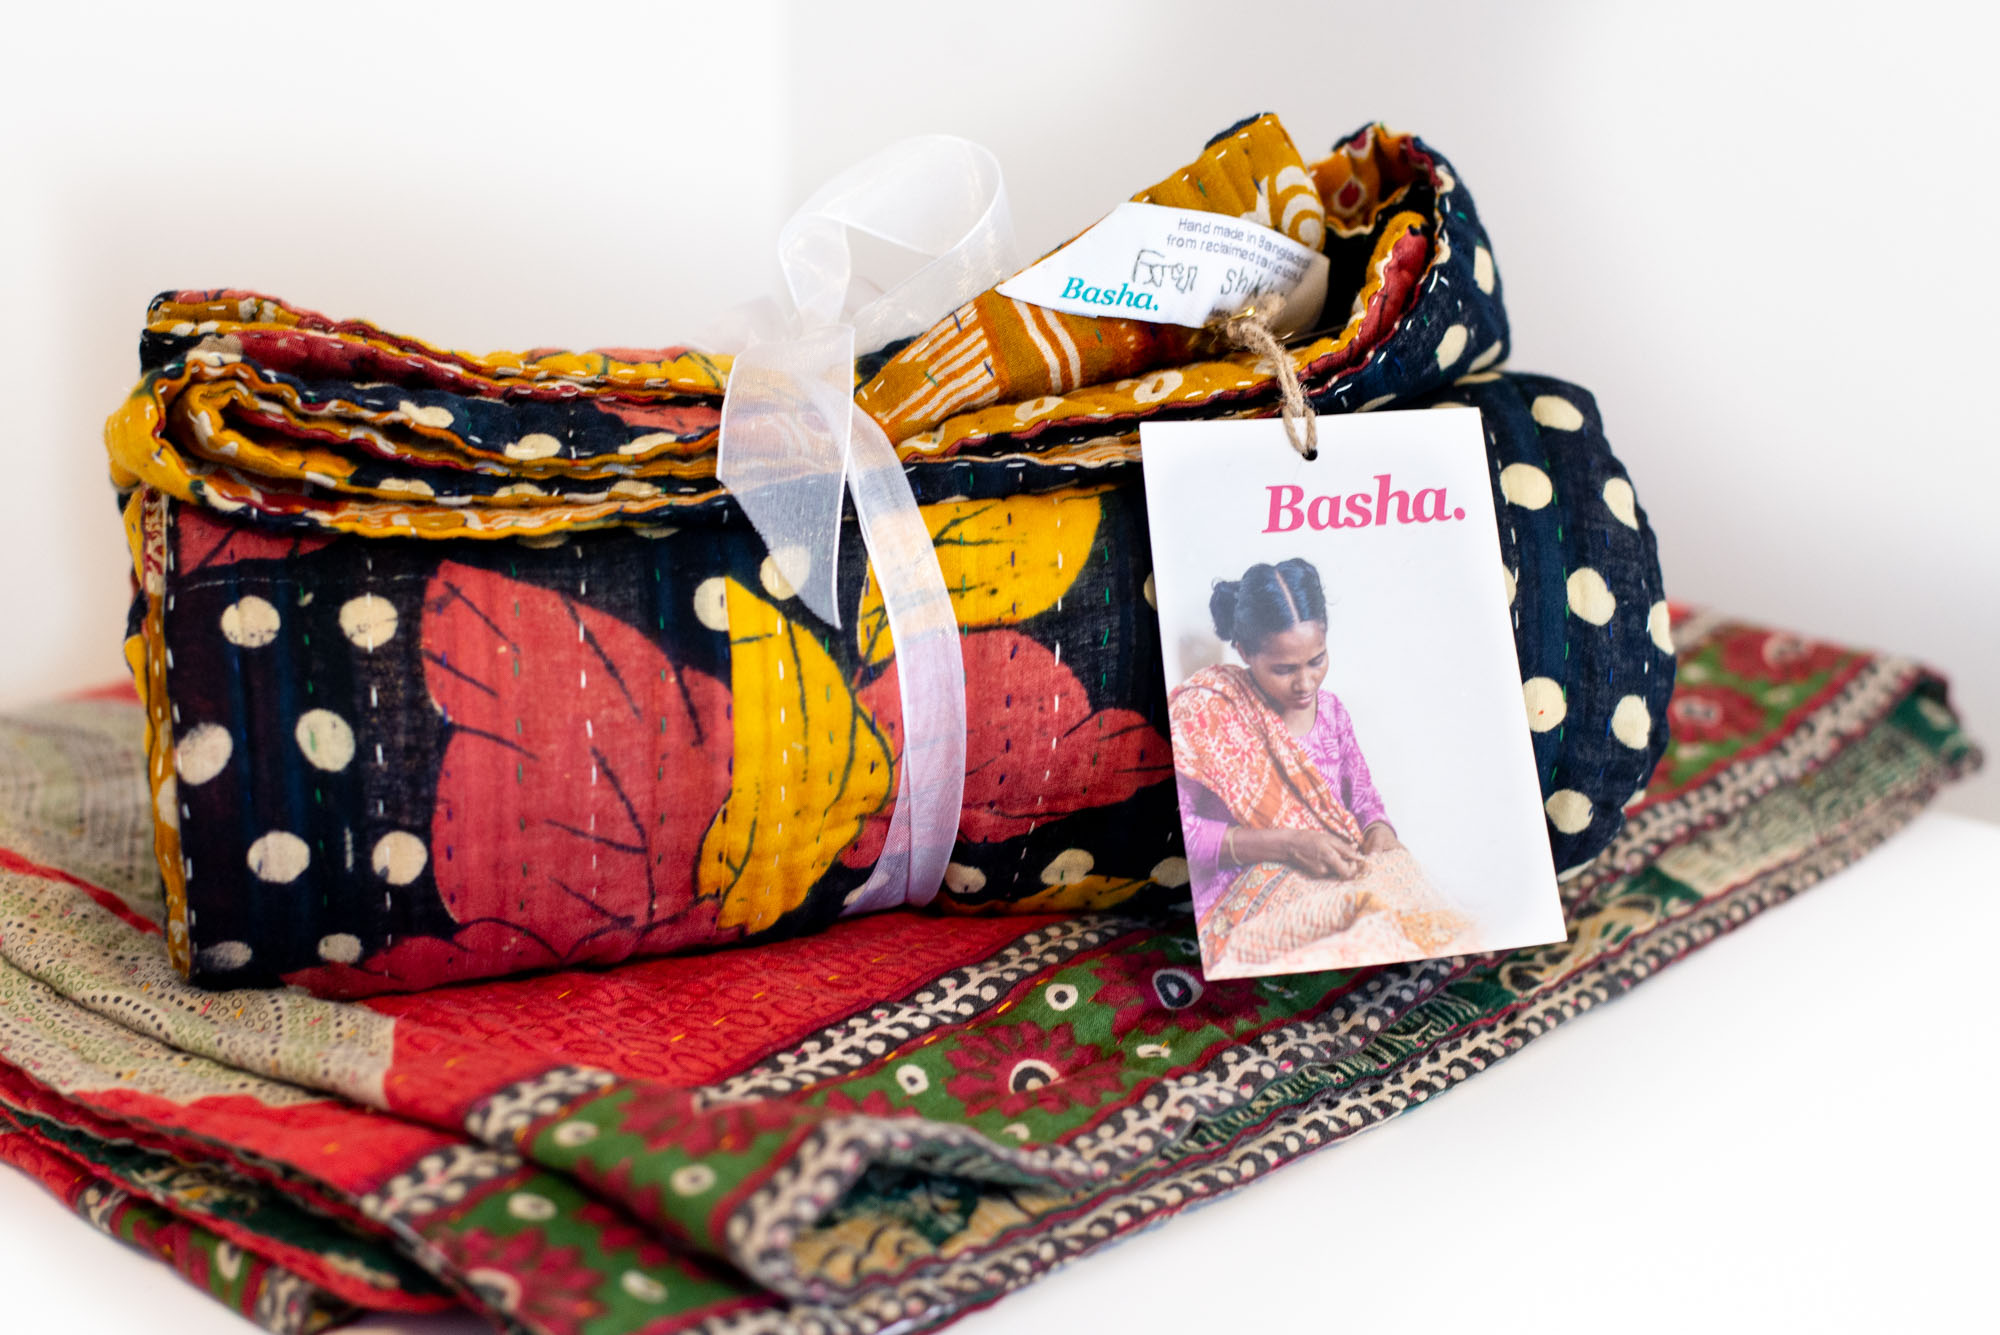 Basha: Hand Stitched Sari Blankets - Basha creates high quality, unique, handmade products which reflect their love for the traditions of Bangladesh while employing women at risk and survivors of trafficking.